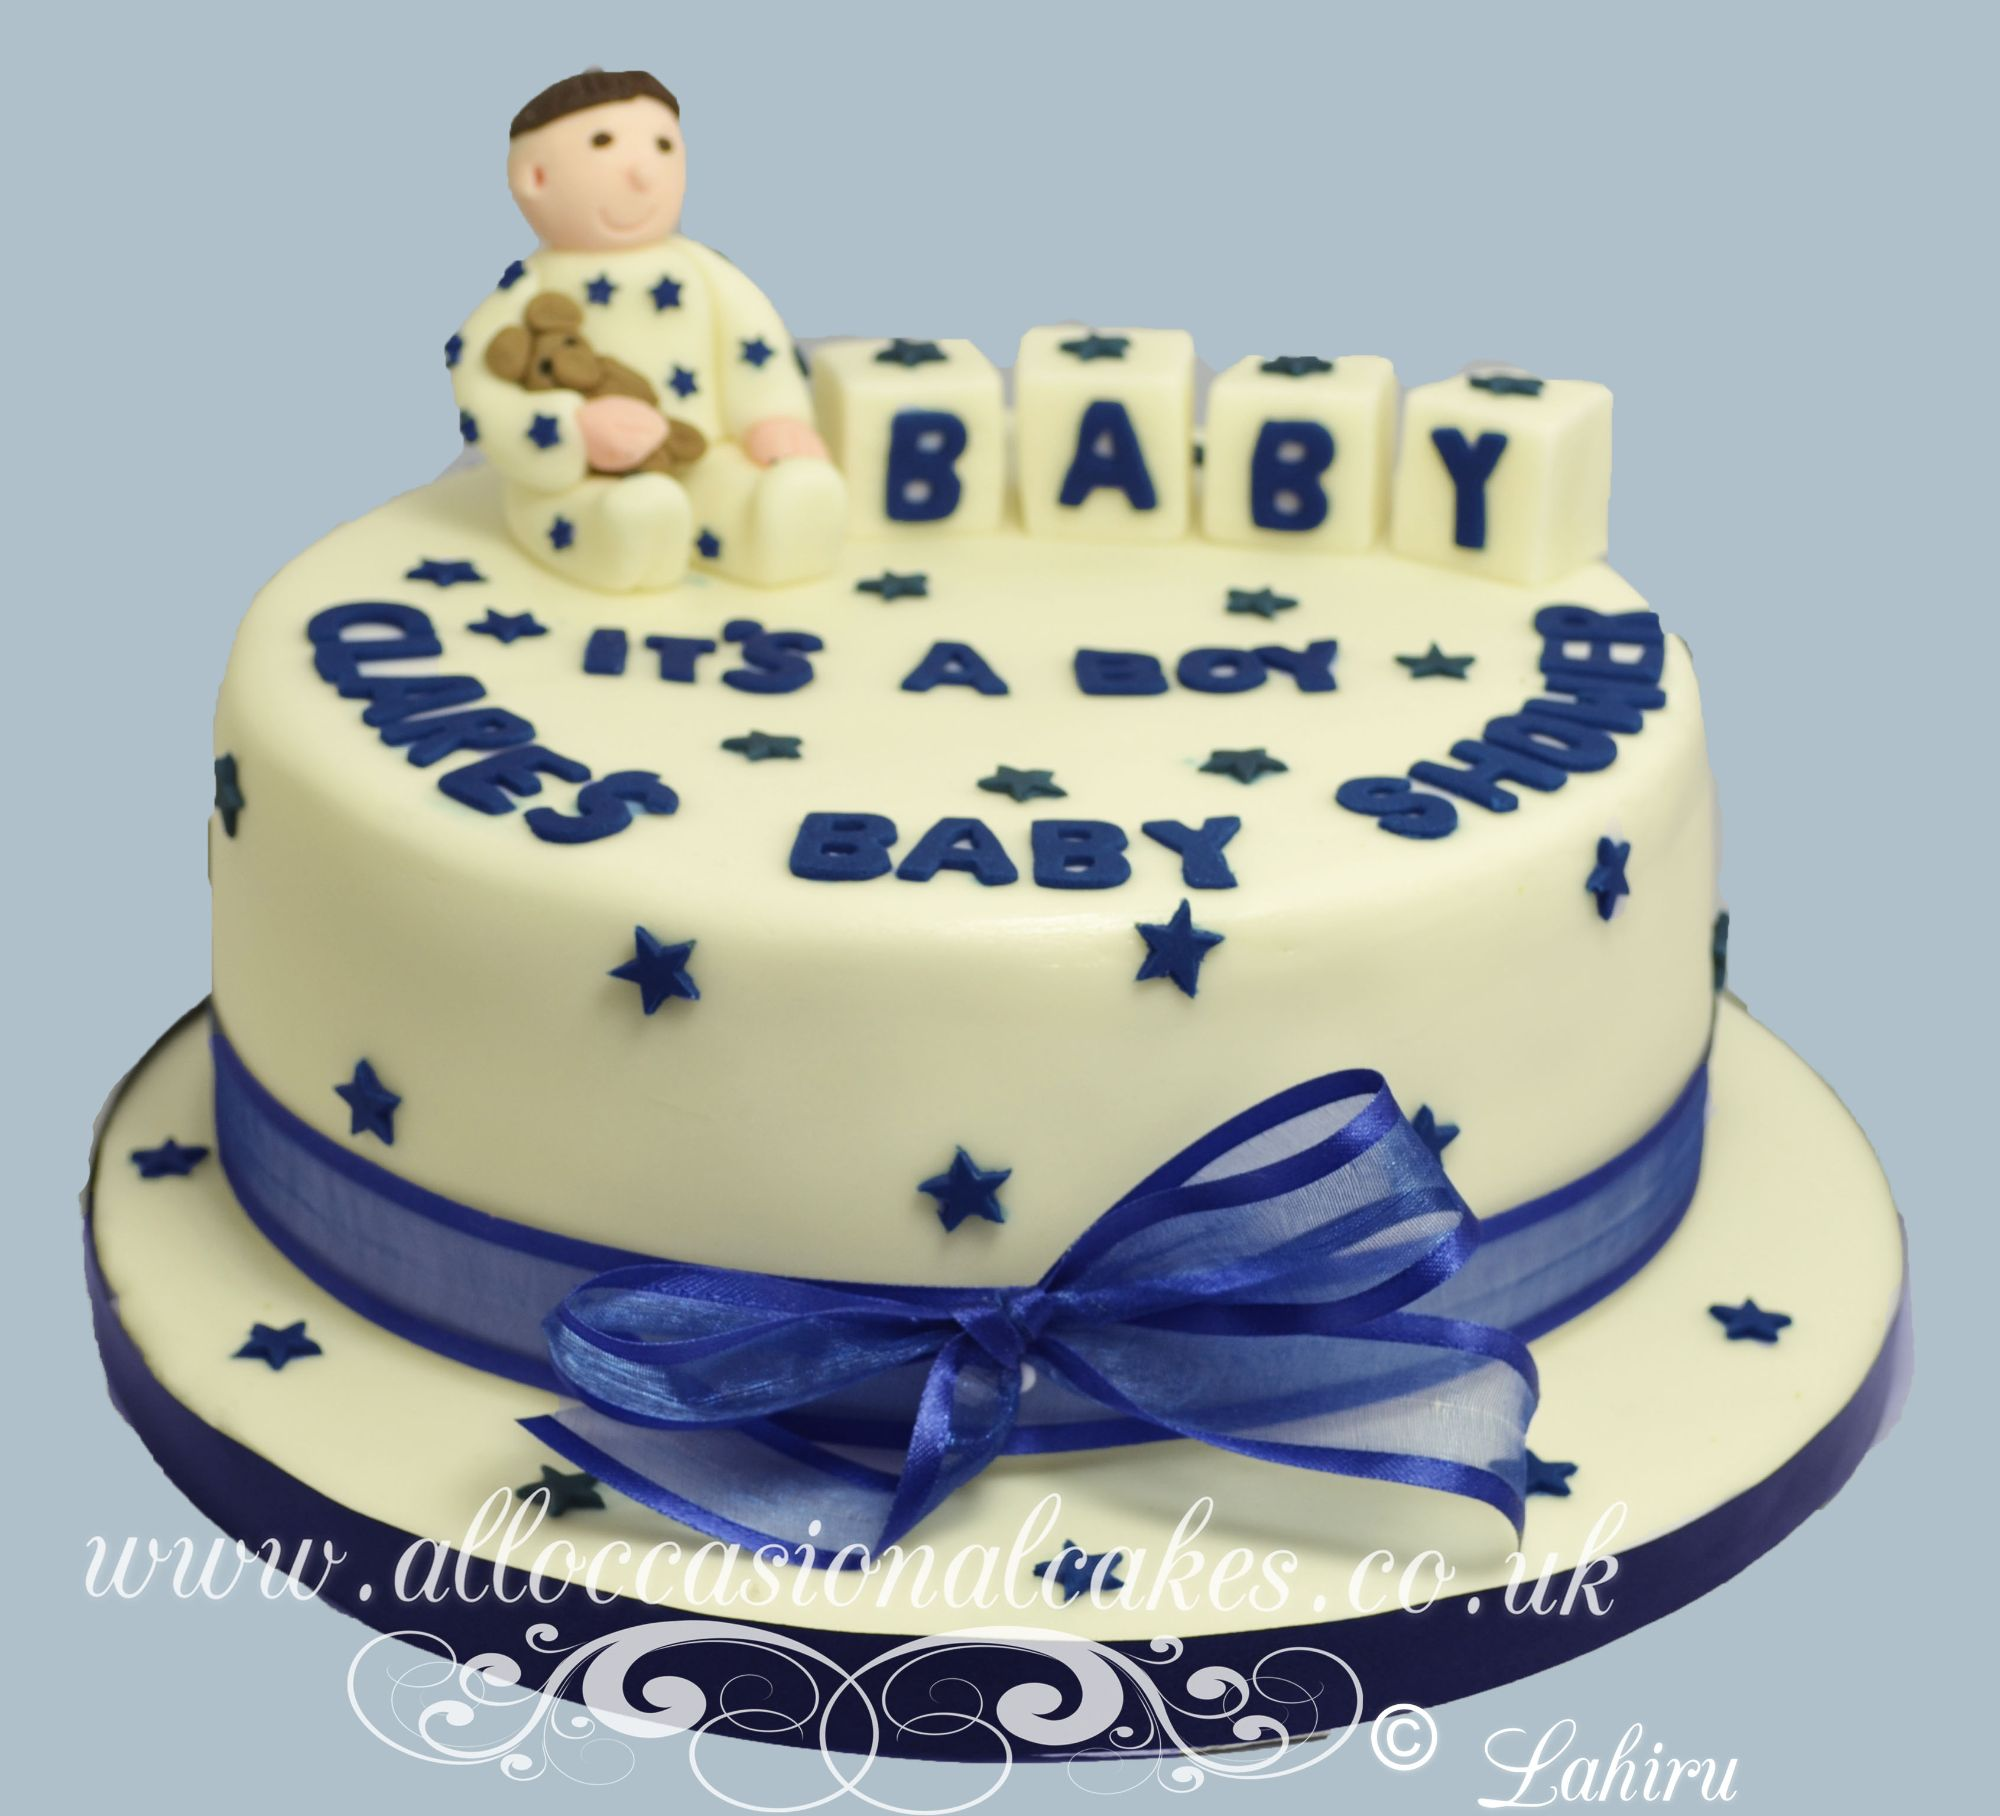 christening cake with baby boy